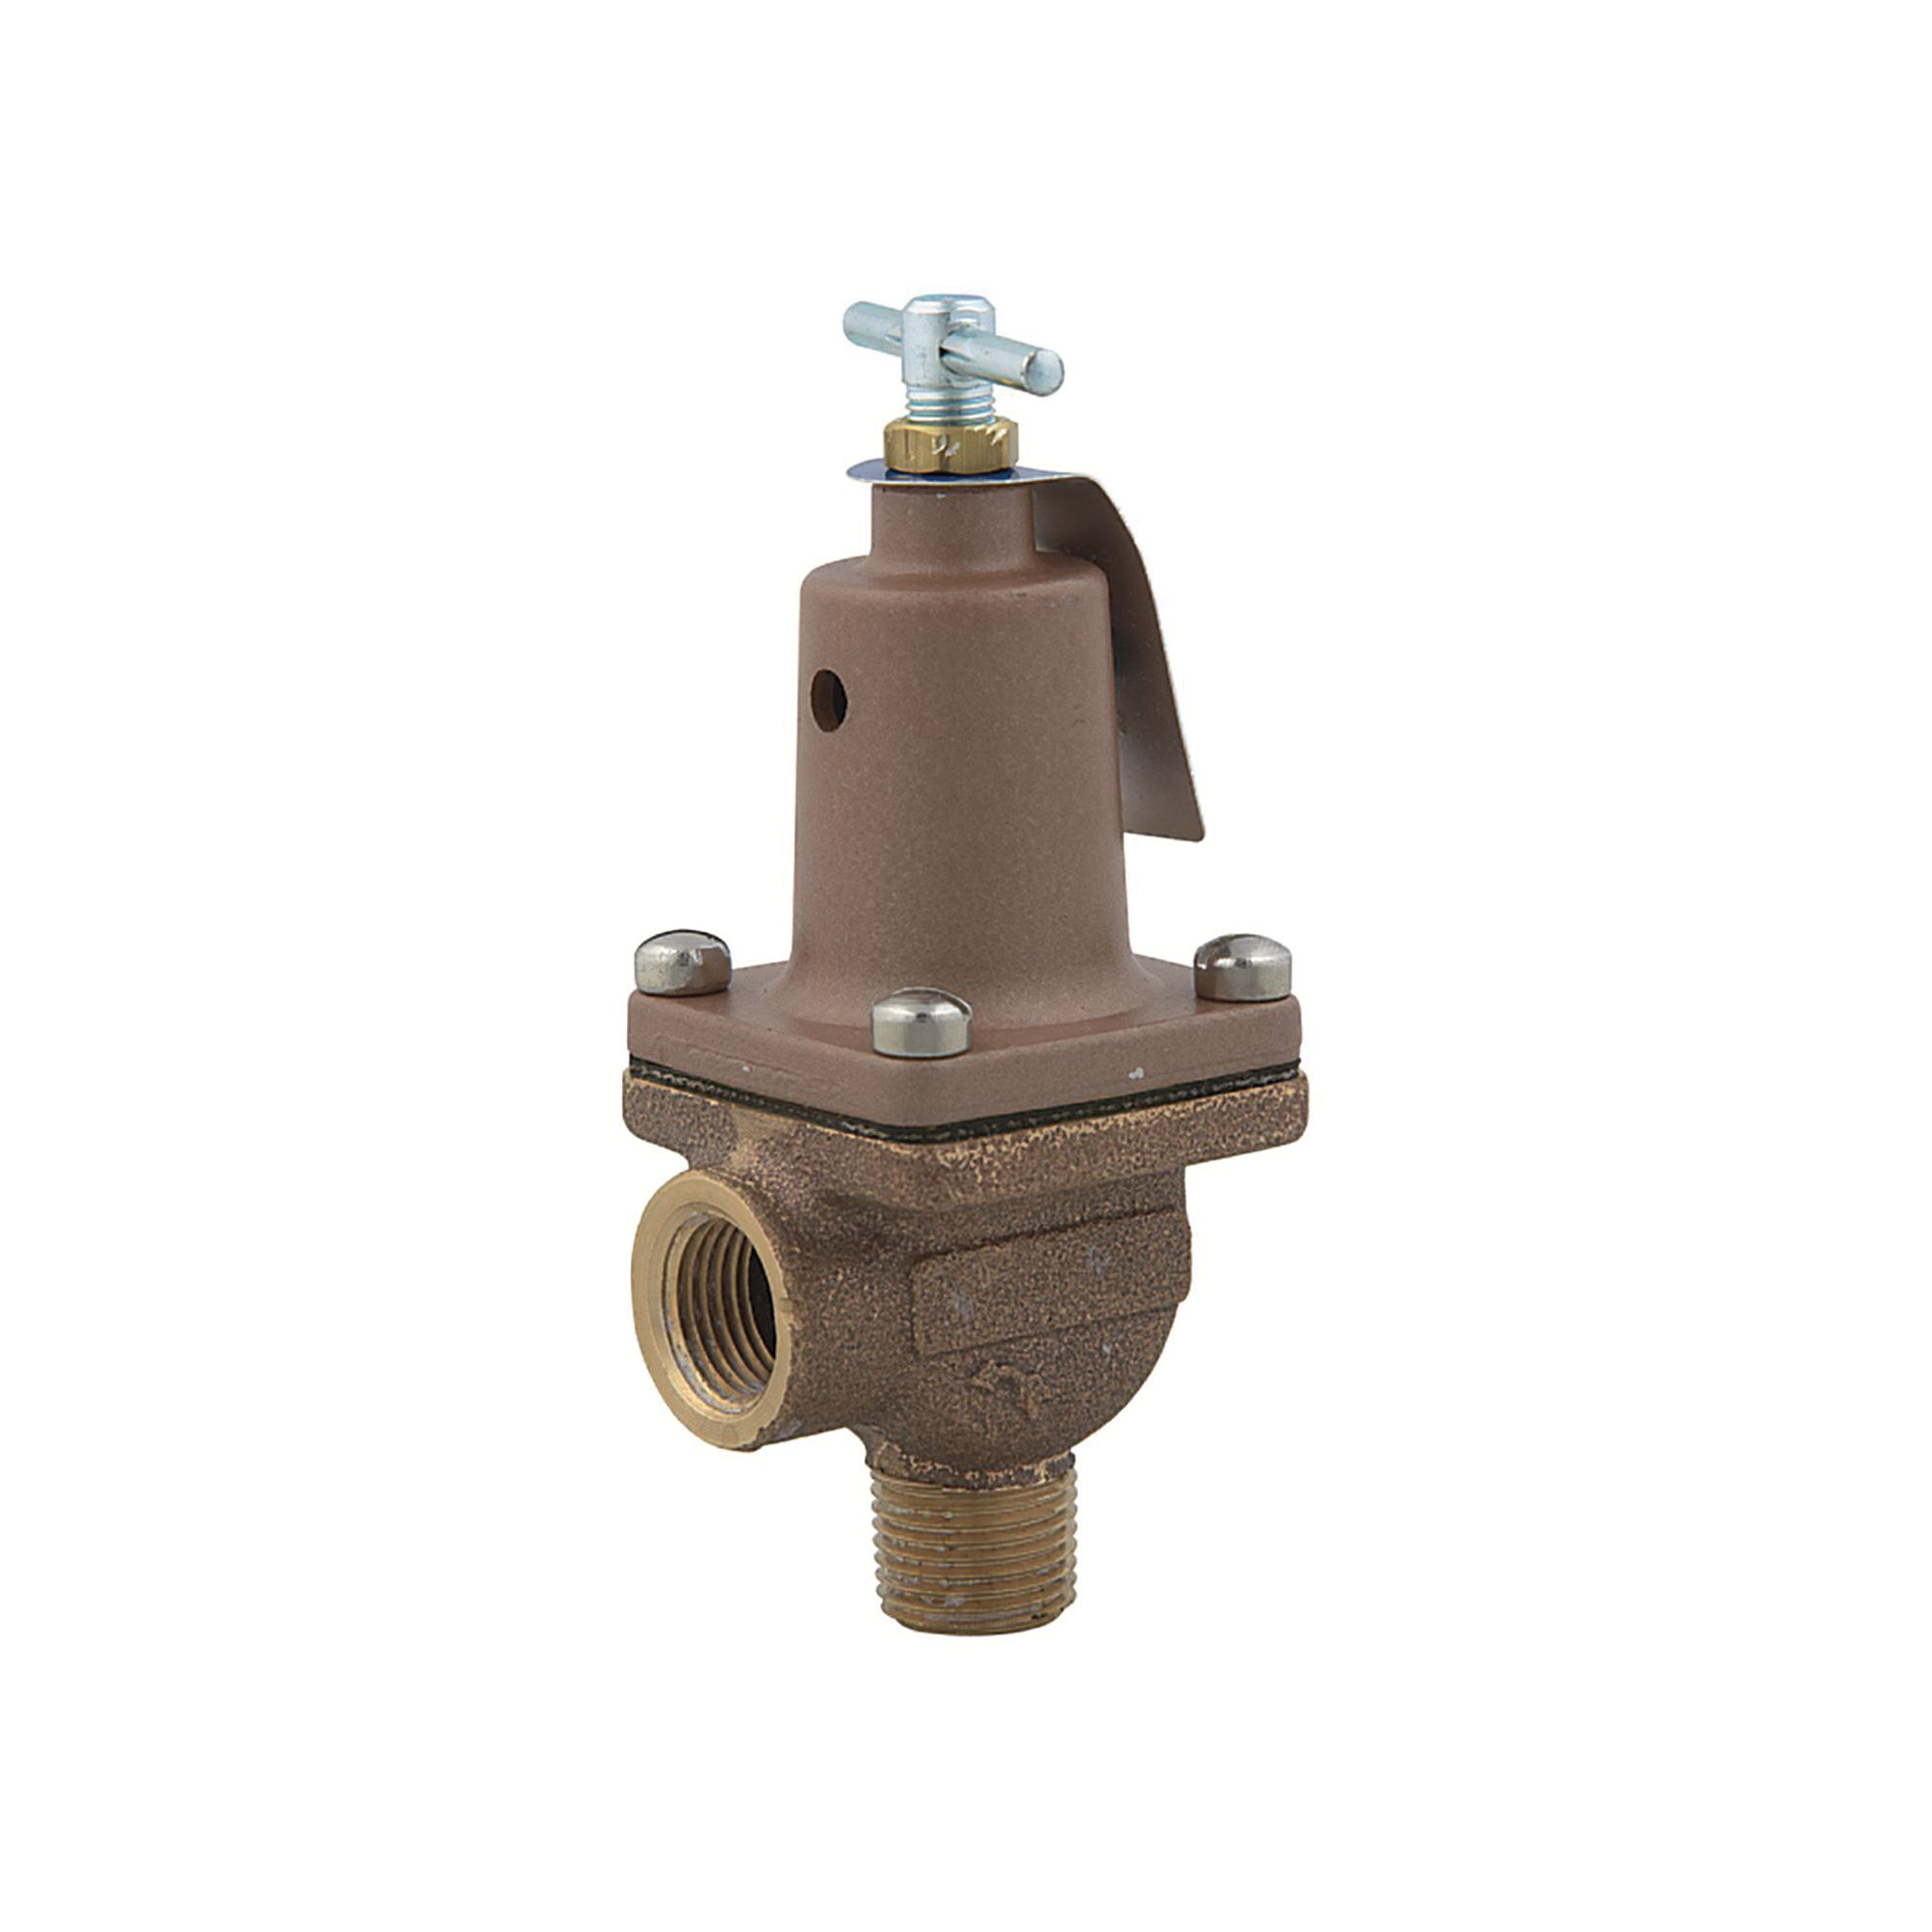 WATTS® 0121399 LFBP30 Bypass Control Relief Valve, 1/2 in, MNPT x FNPT, 10 to 50 psi, Cast Copper Silicon Alloy Body